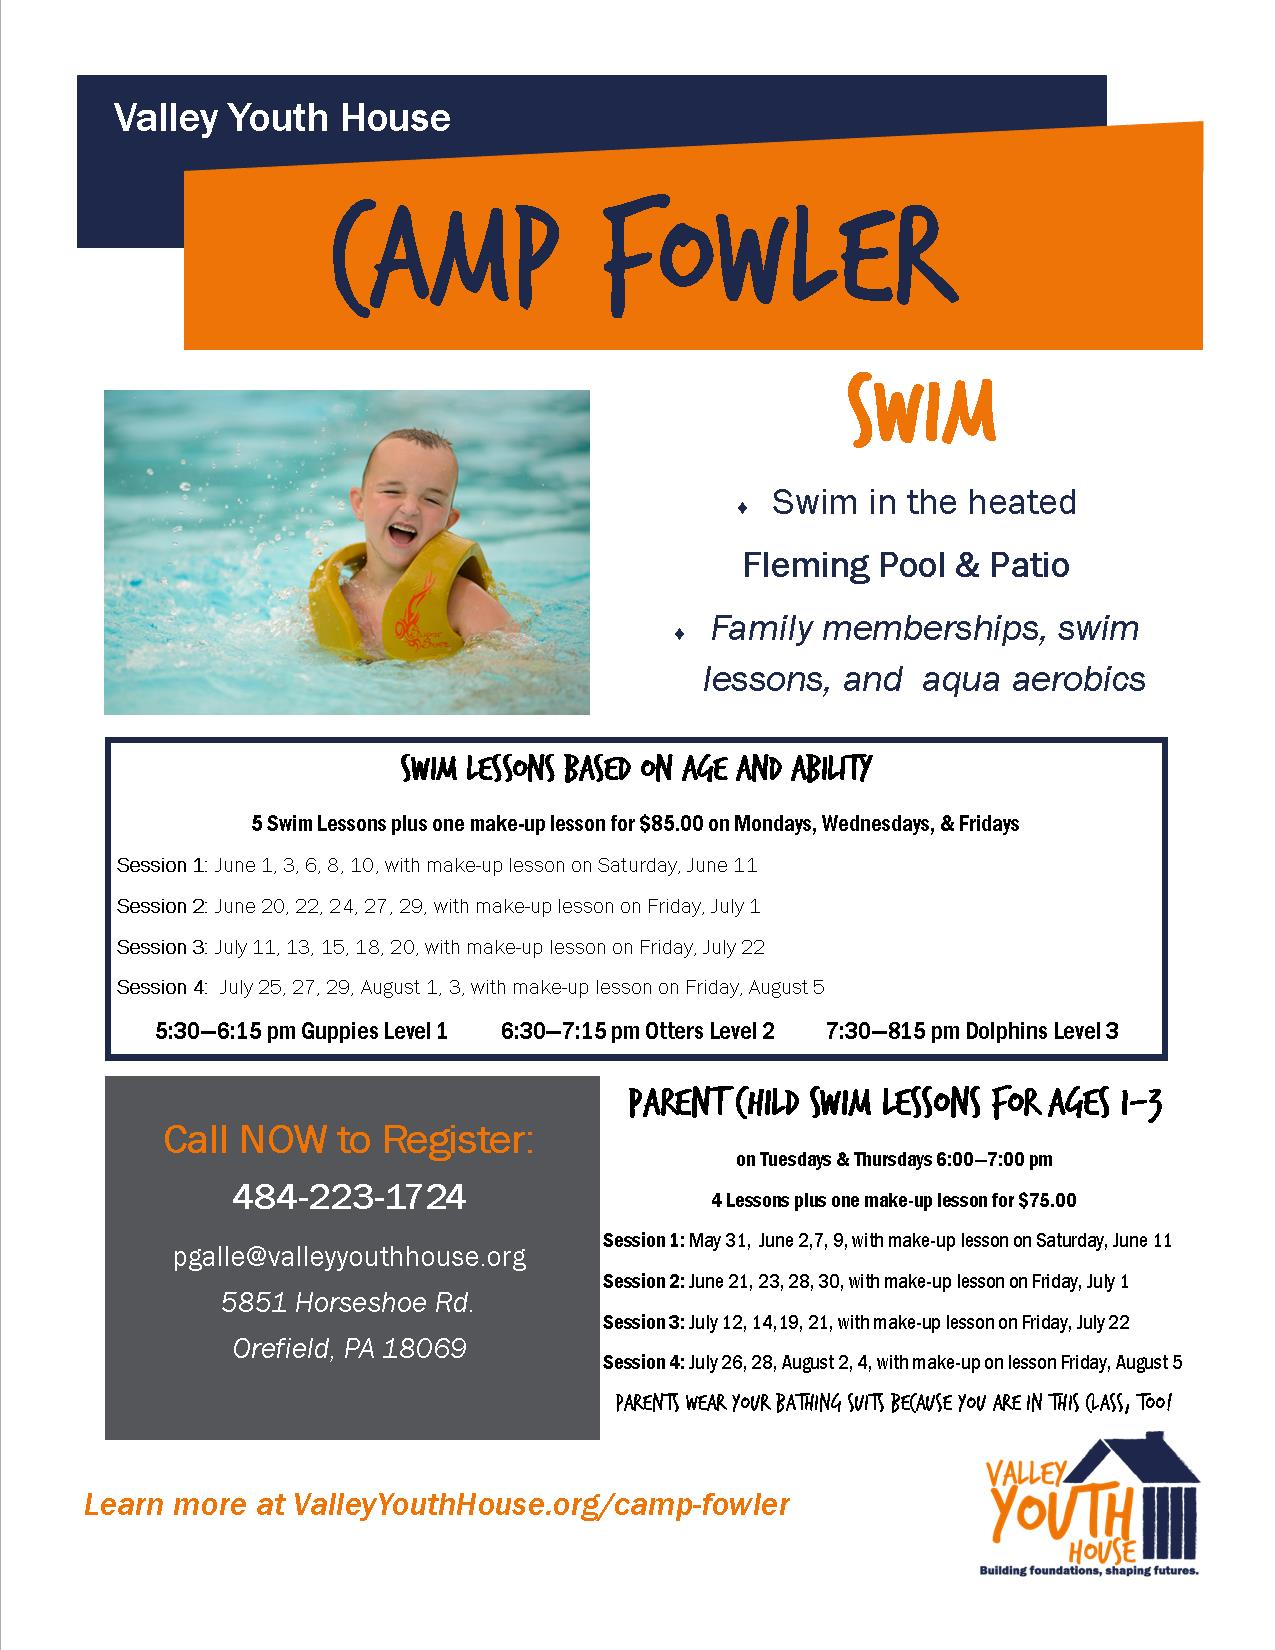 Camp Fowler Swim flyer 2016